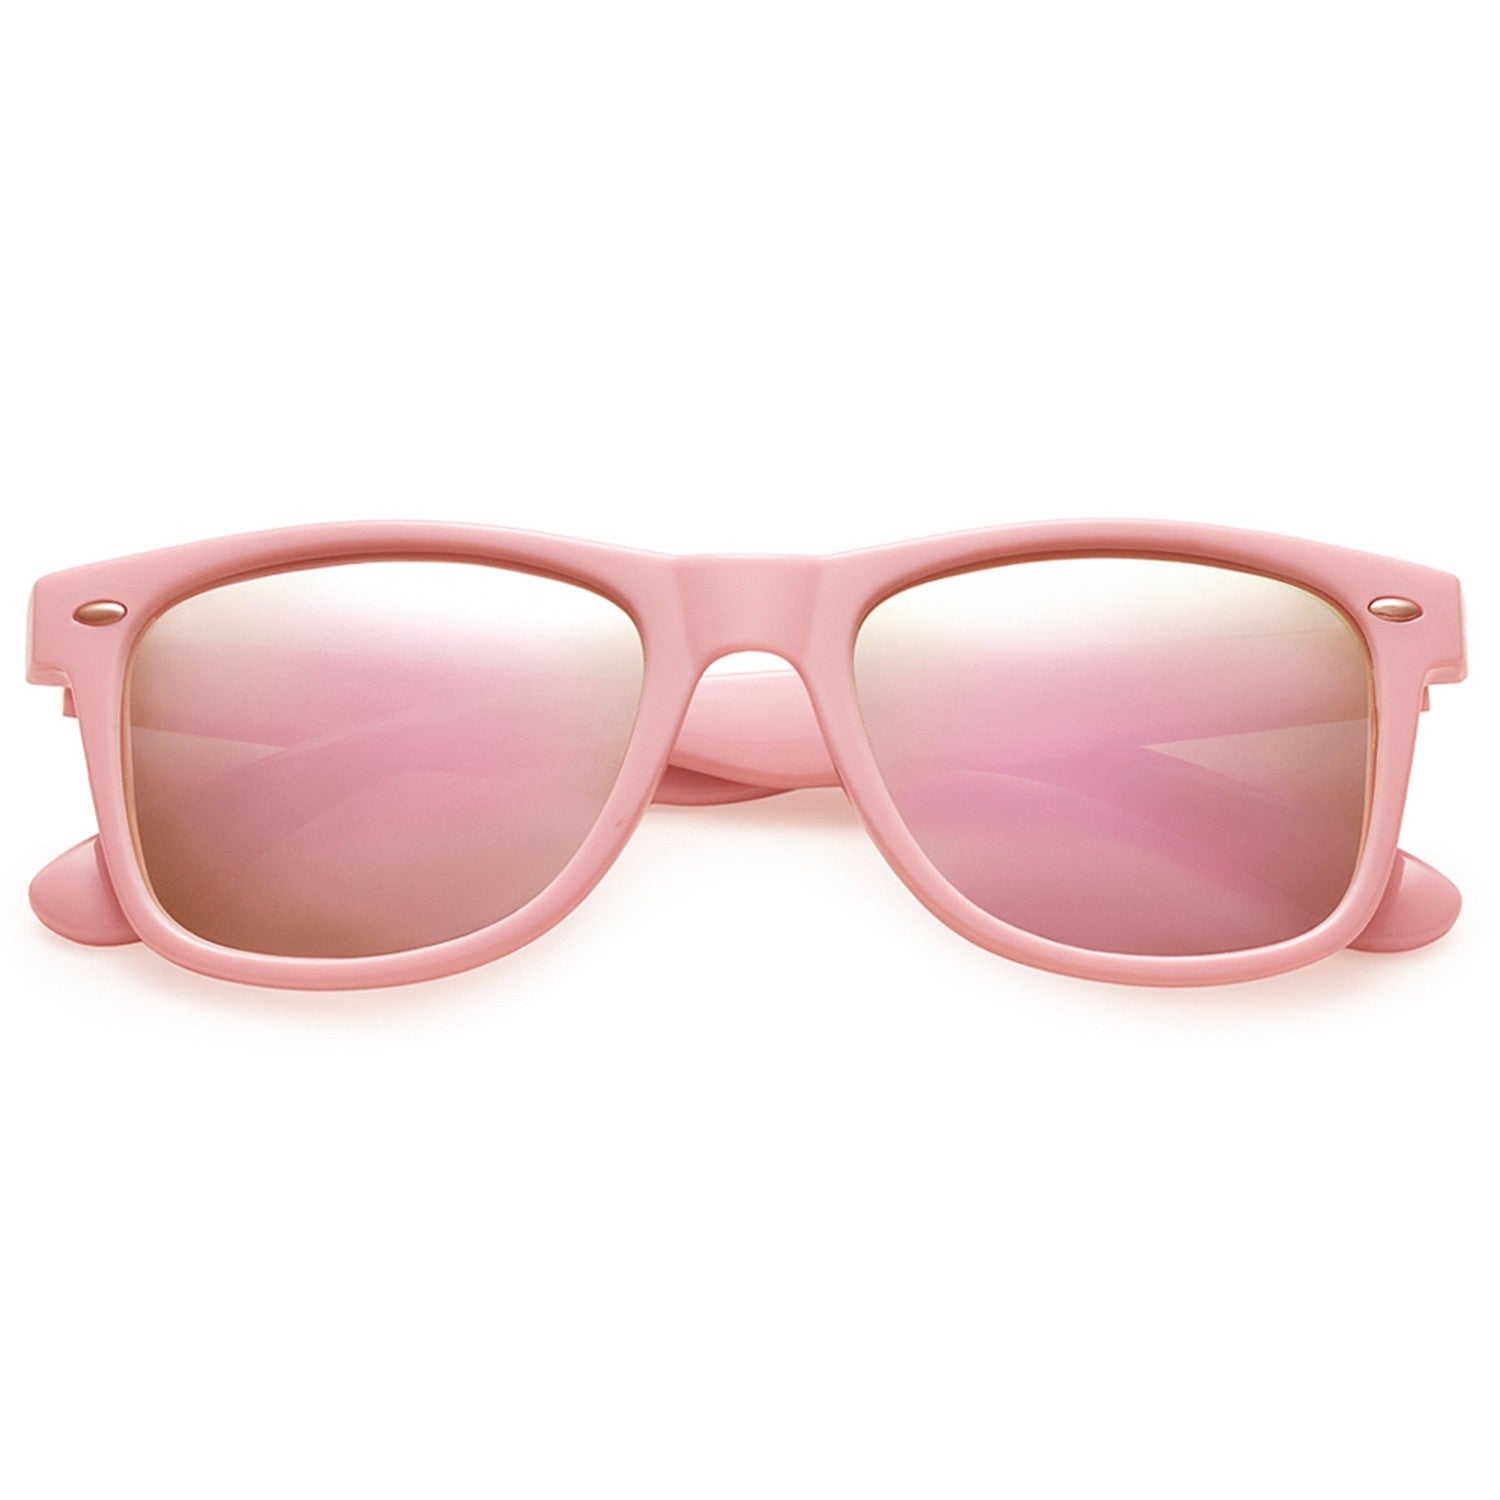 Polarspex Polarized 80's Retro Style Unisex Sunglasses with Princess Pink Frames and Pink Quartz Lenses